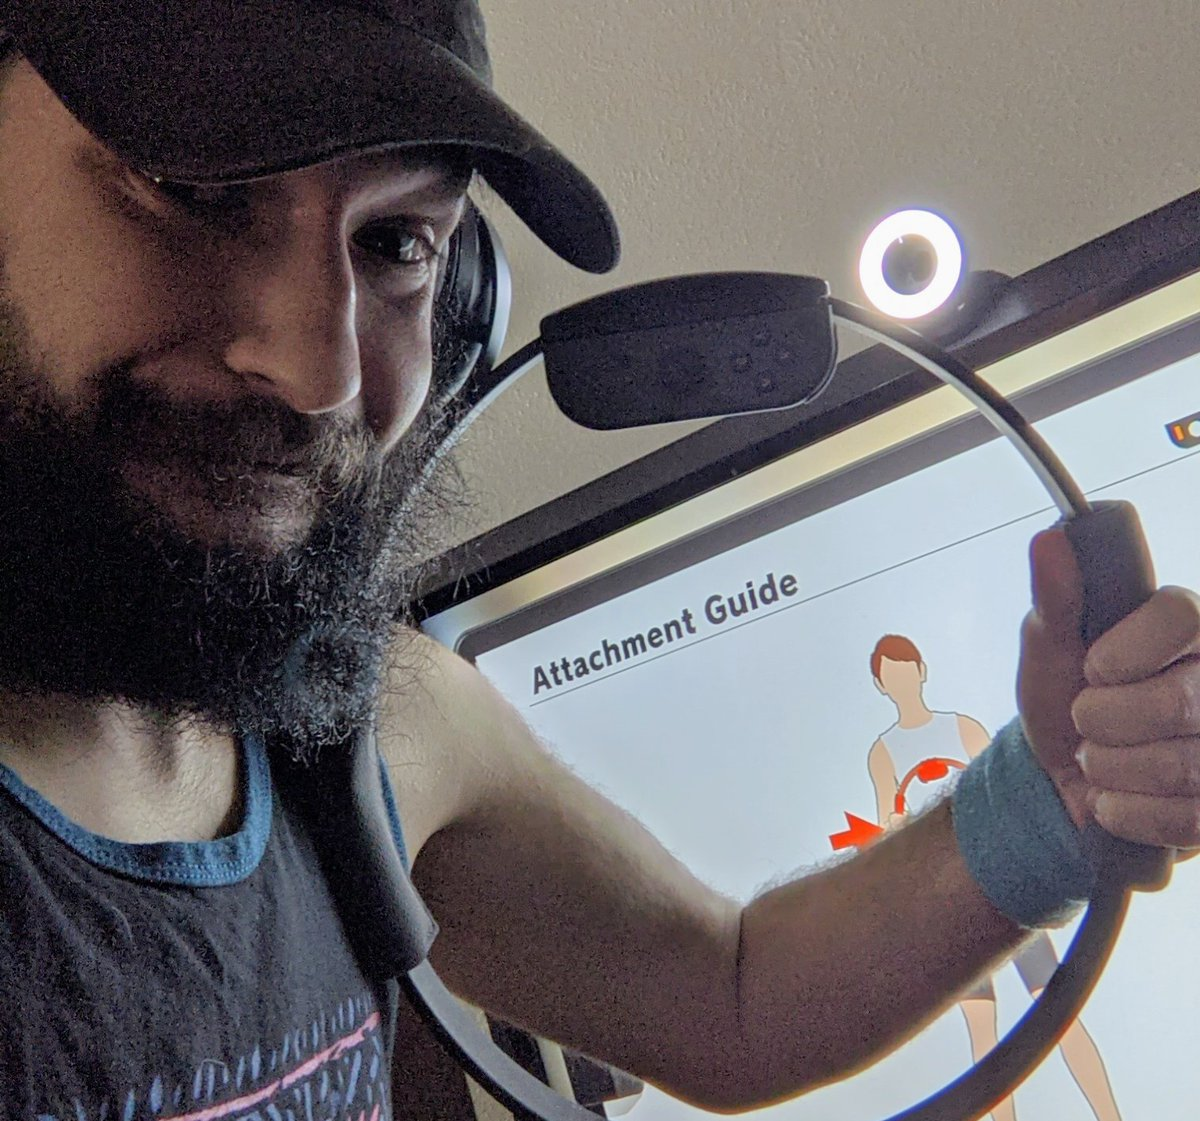 Live right now on this #MotivationMonday with #RingFitAdventure! Let's get some gains! Join me at  -  -  as I continue on my #weightloss journey! #twitch #twitchaffiliate #NintendoSwitch #workout #health #fitness #MondayMotivation #fatloss #mondaythoughts